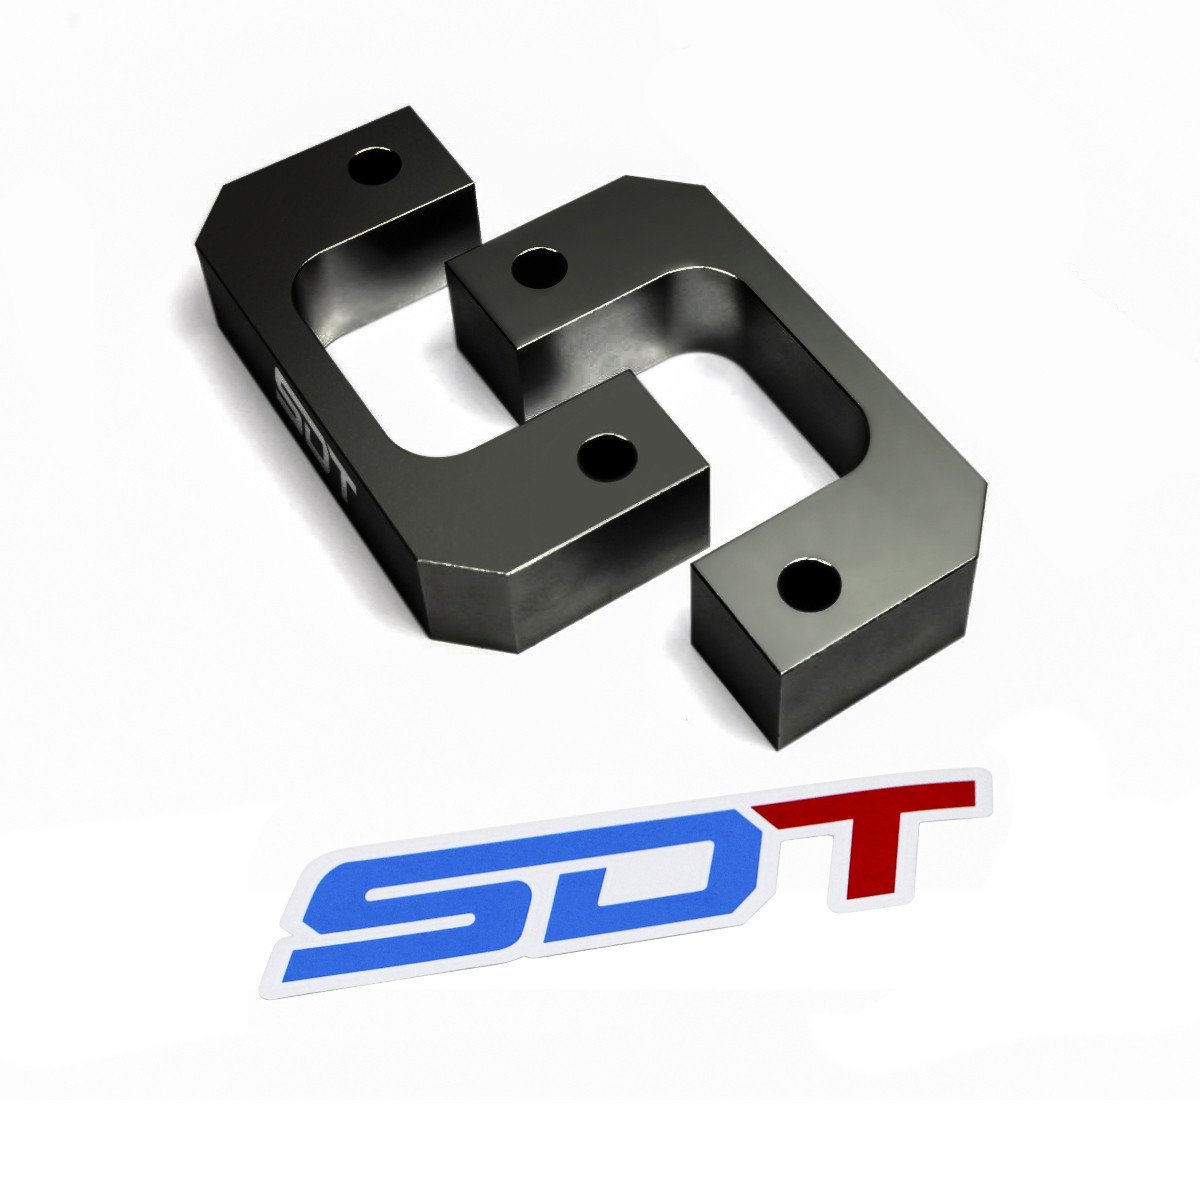 Chevy Silverado GMC Sierra 1500 Front Lower Strut Mount Leveling Lift Kit - 1.5' Front StreetDirtTrack